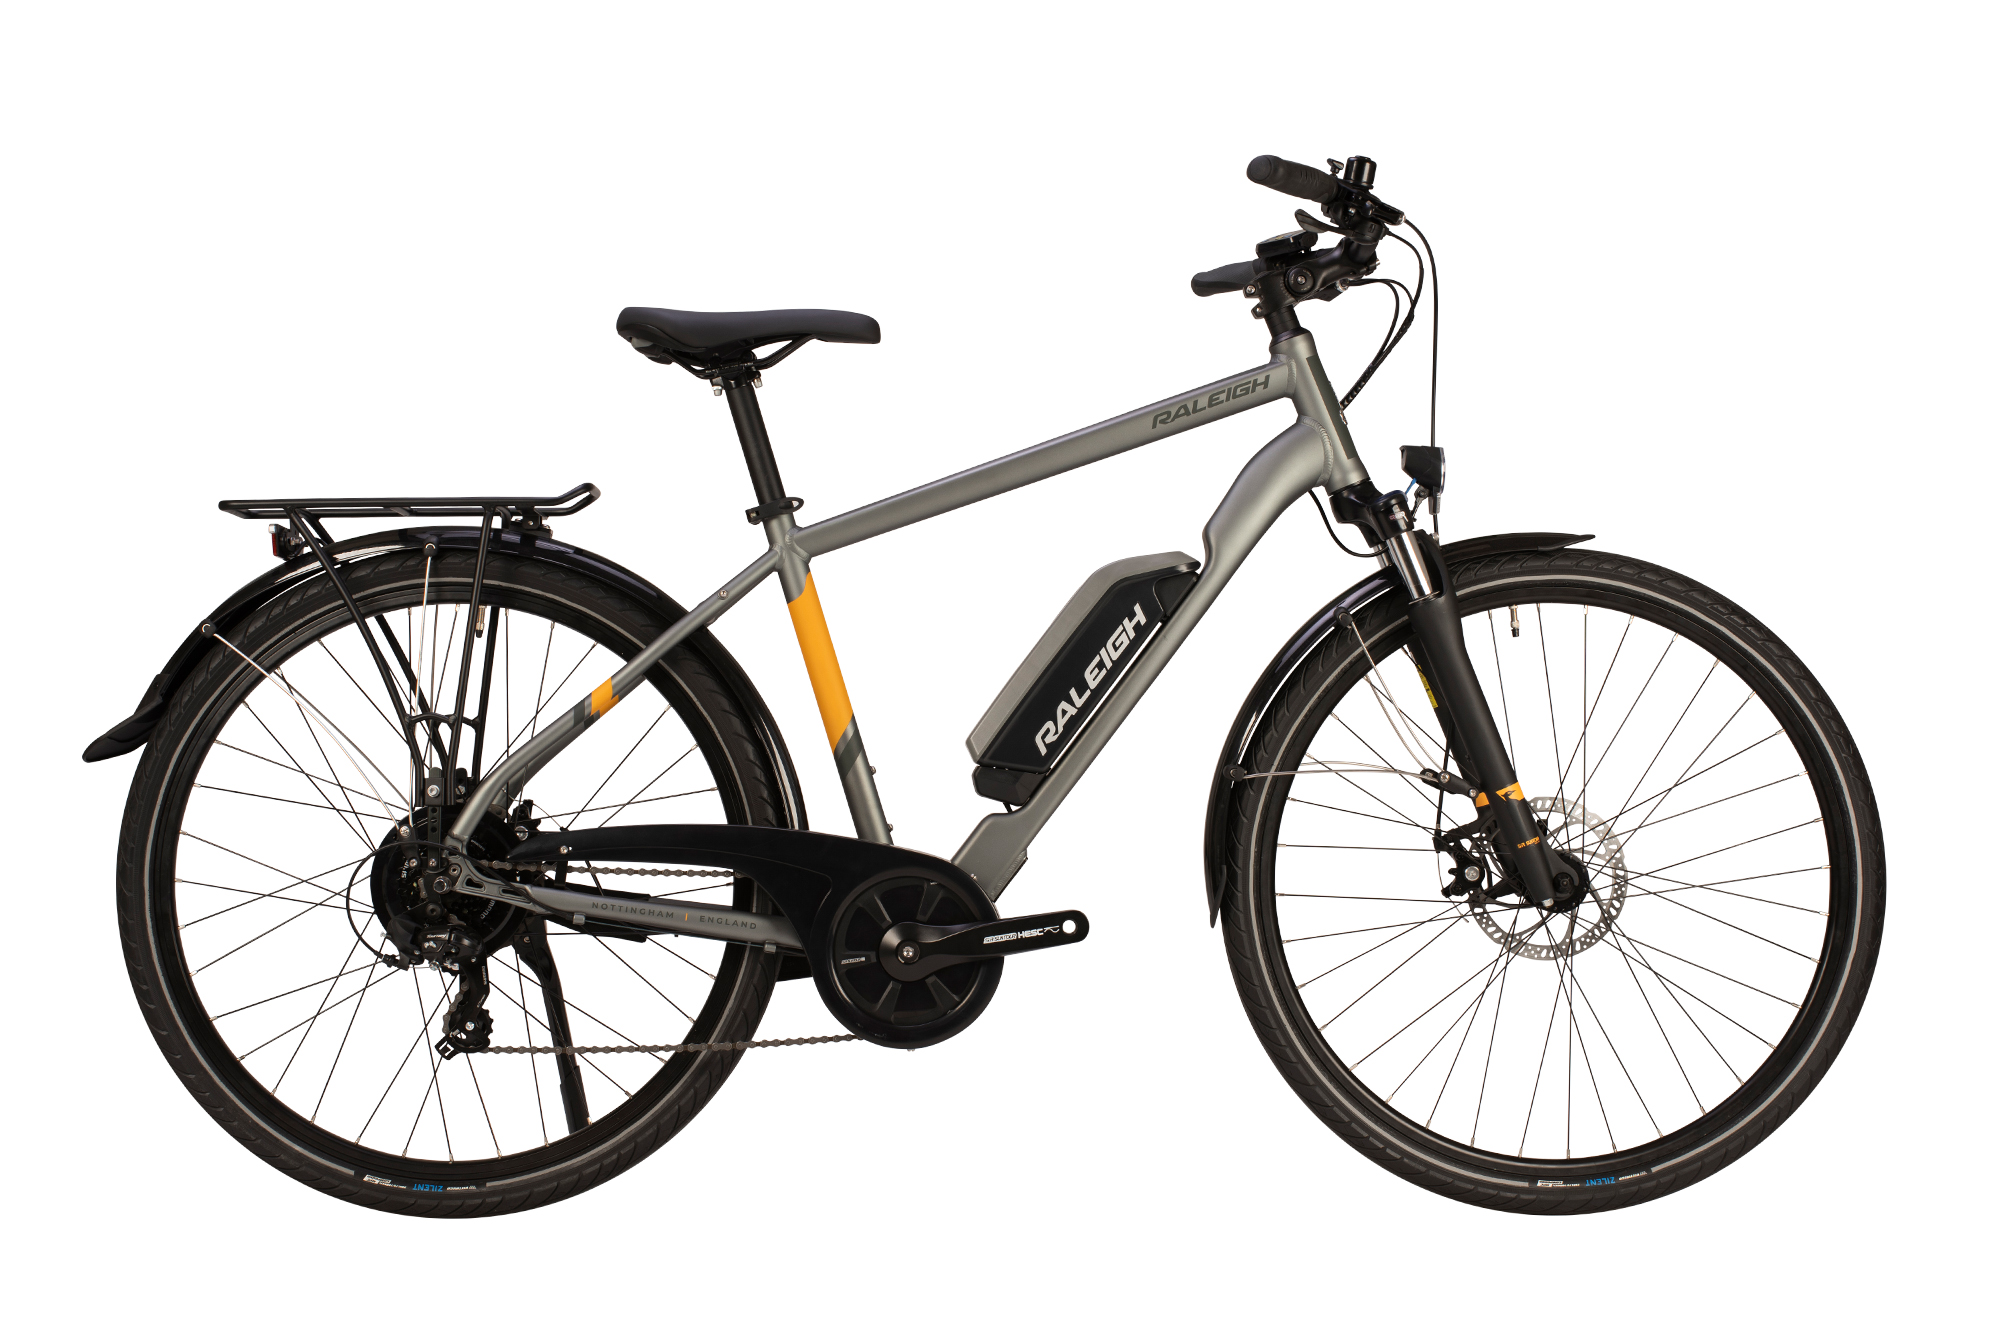 Raleigh Array electric bike with crossbar frame